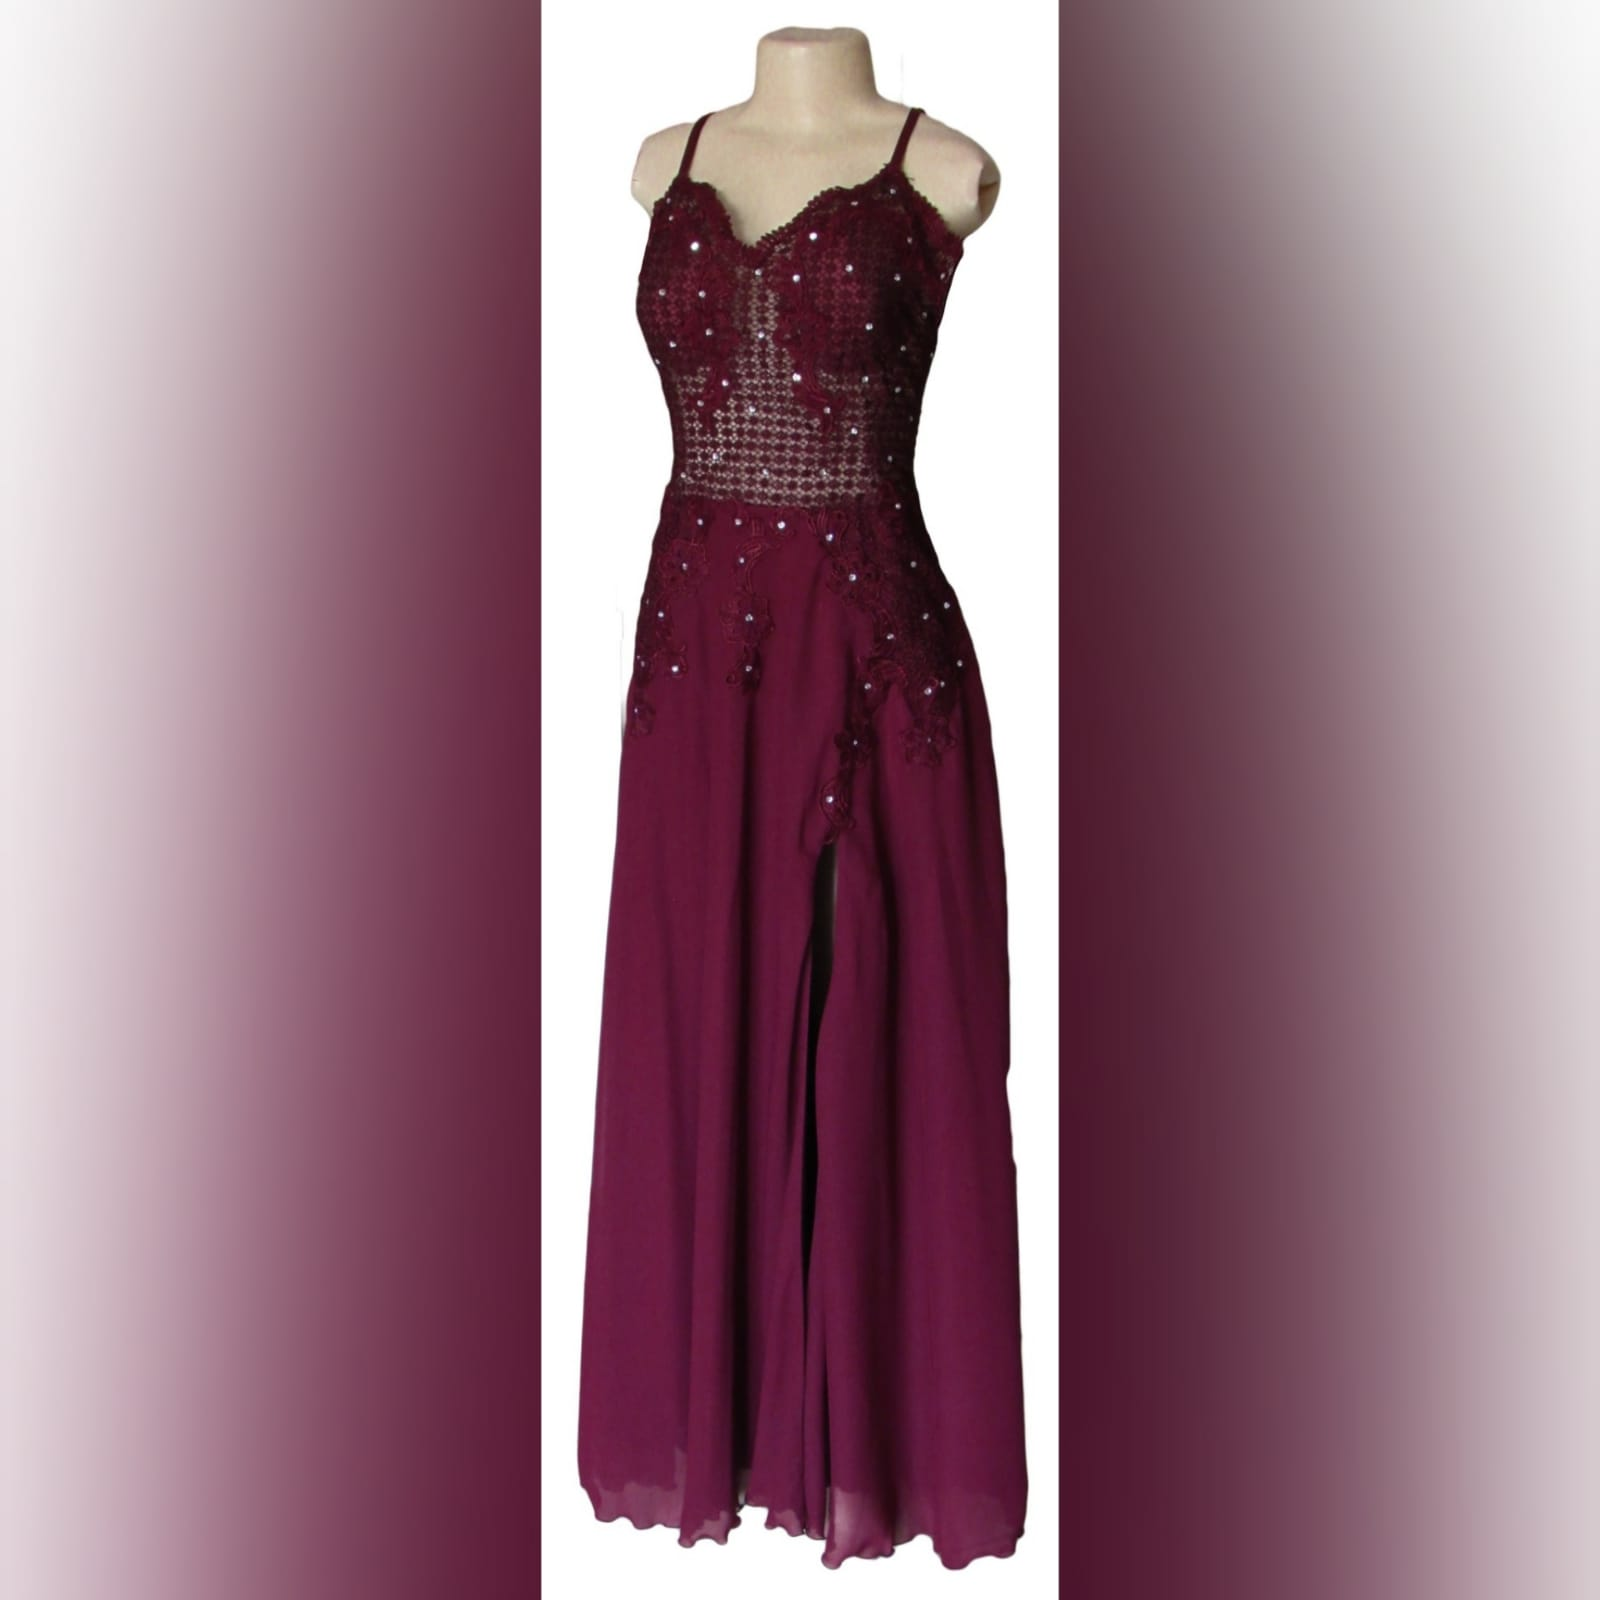 Burgundy chiffon and lace prom dress 4 burgundy chiffon and lace prom dress. Bodice in lace, with a v neckline and v low open back, with double shoulder crossed straps. Bodice detailed with silver beads. Bottom in flowy chiffon with a slit.